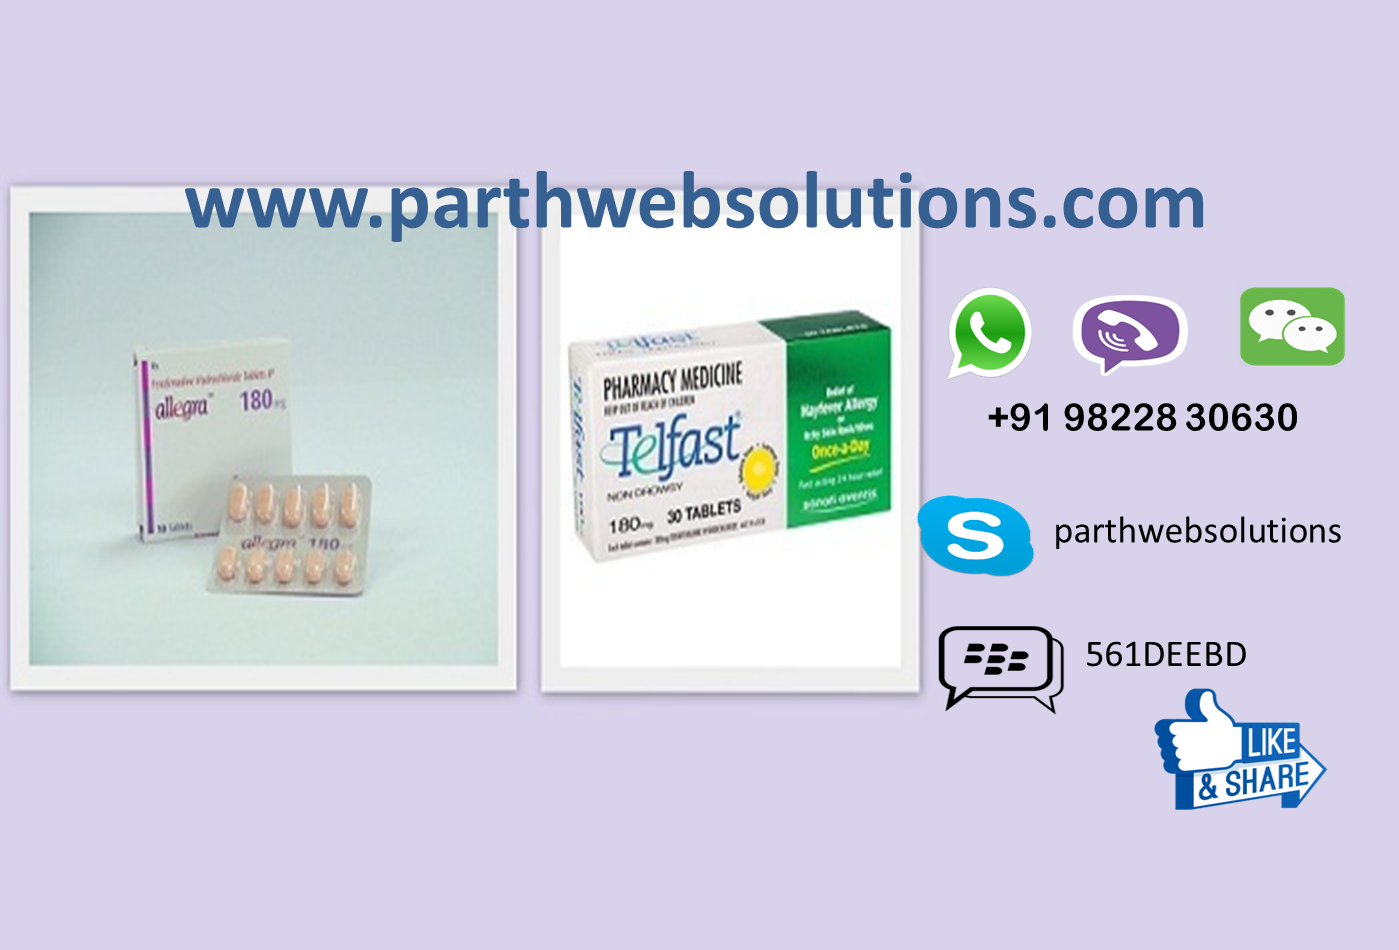 Allegra 180mg, Telfast 120mg (Fexofenadine Tablets)